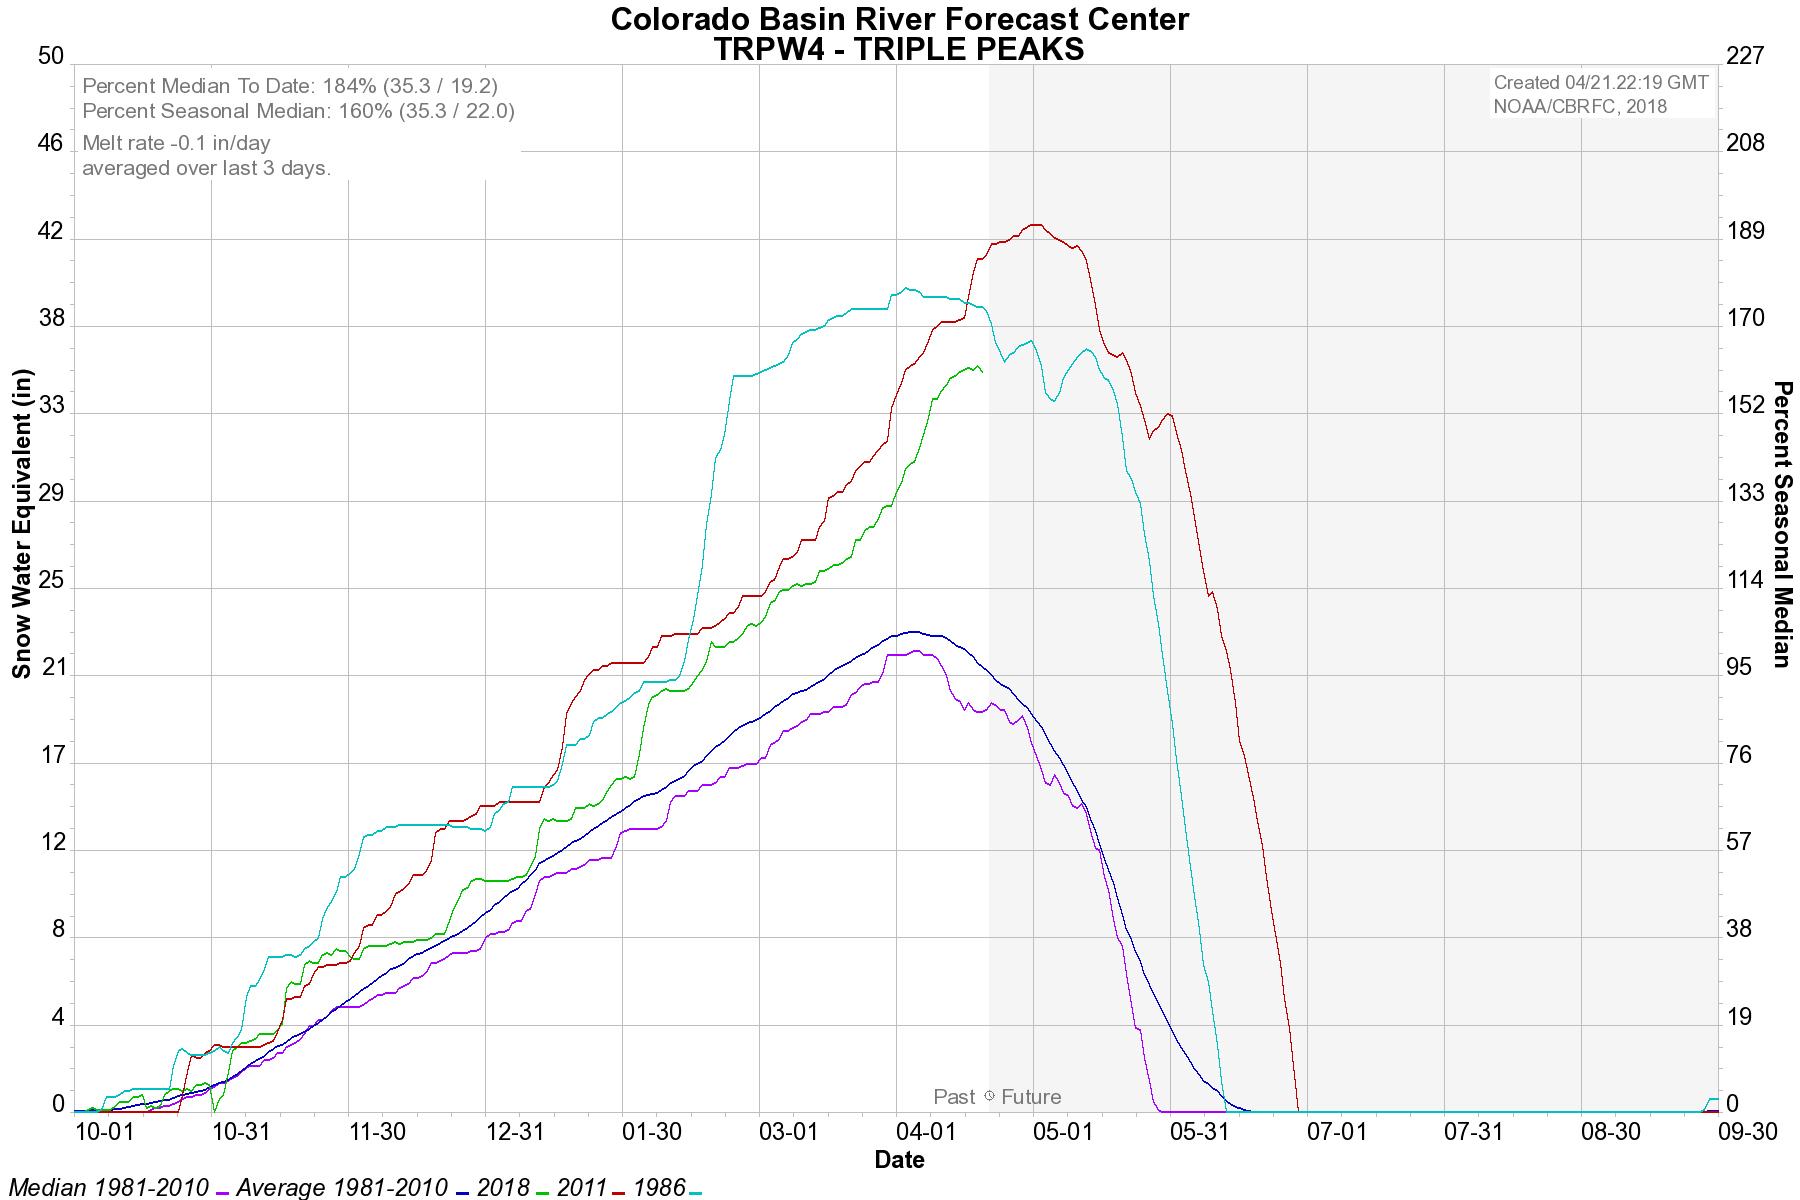 Triple Peak SnoTel Current and Historical Data - Click to Enlarge